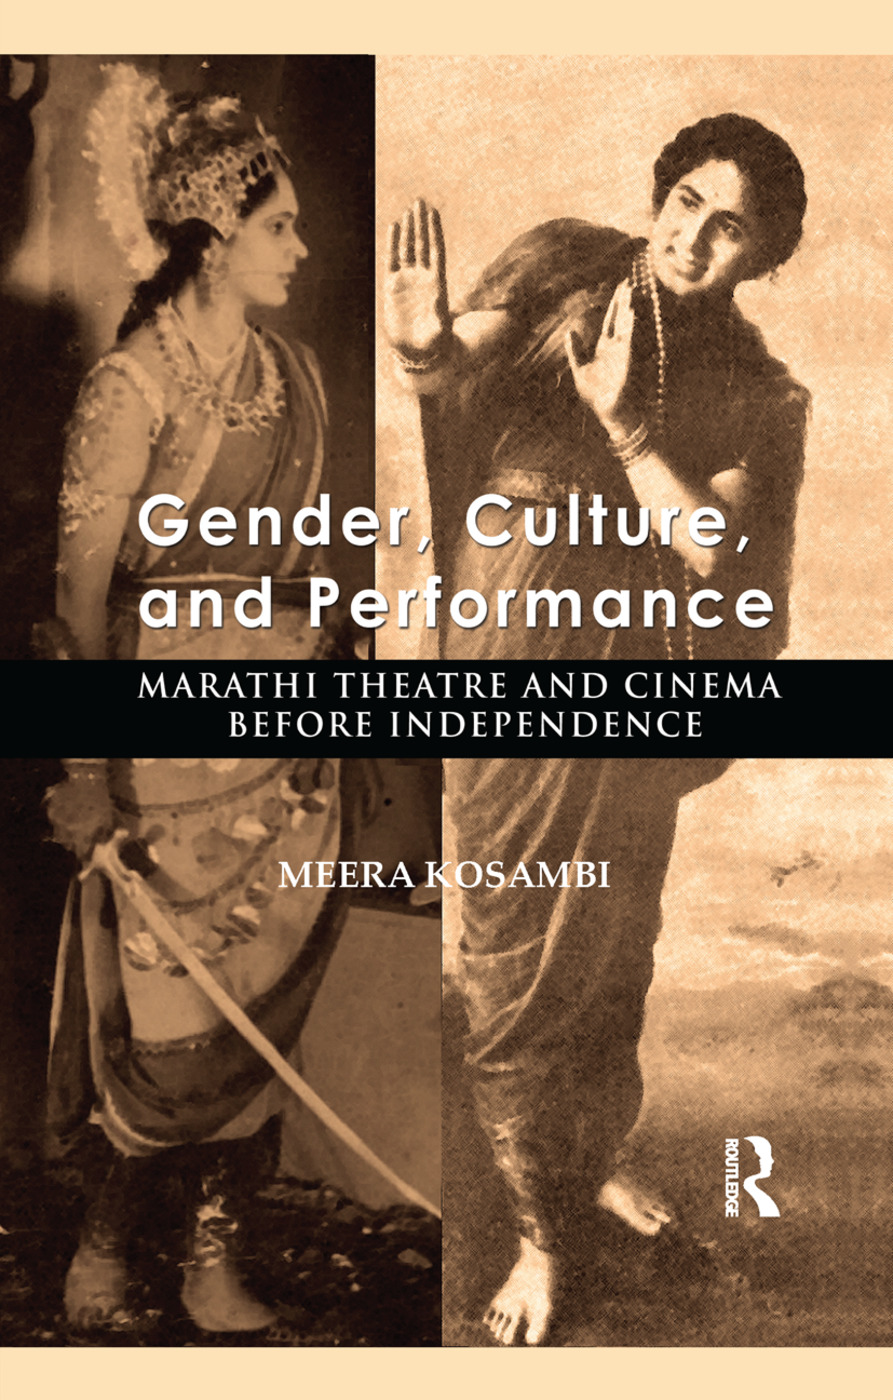 Gender, Culture, and Performance: Marathi Theatre and Cinema before Independence book cover